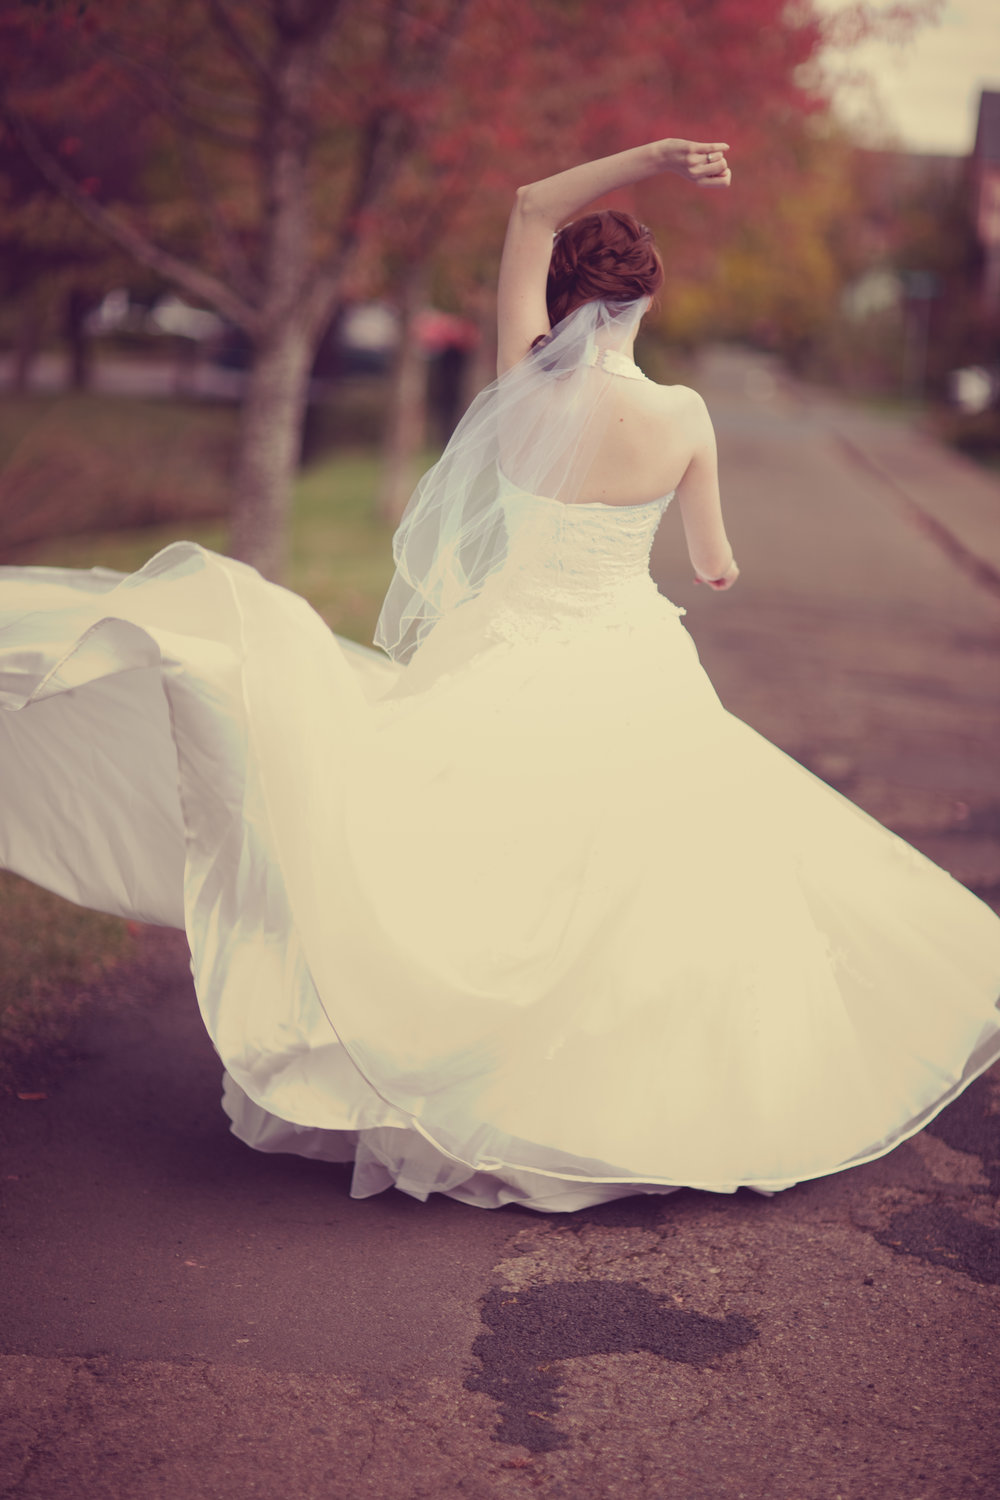 Bride walking away: View of bride walking away in full-skirted wedding dress, cut to create graceful movement